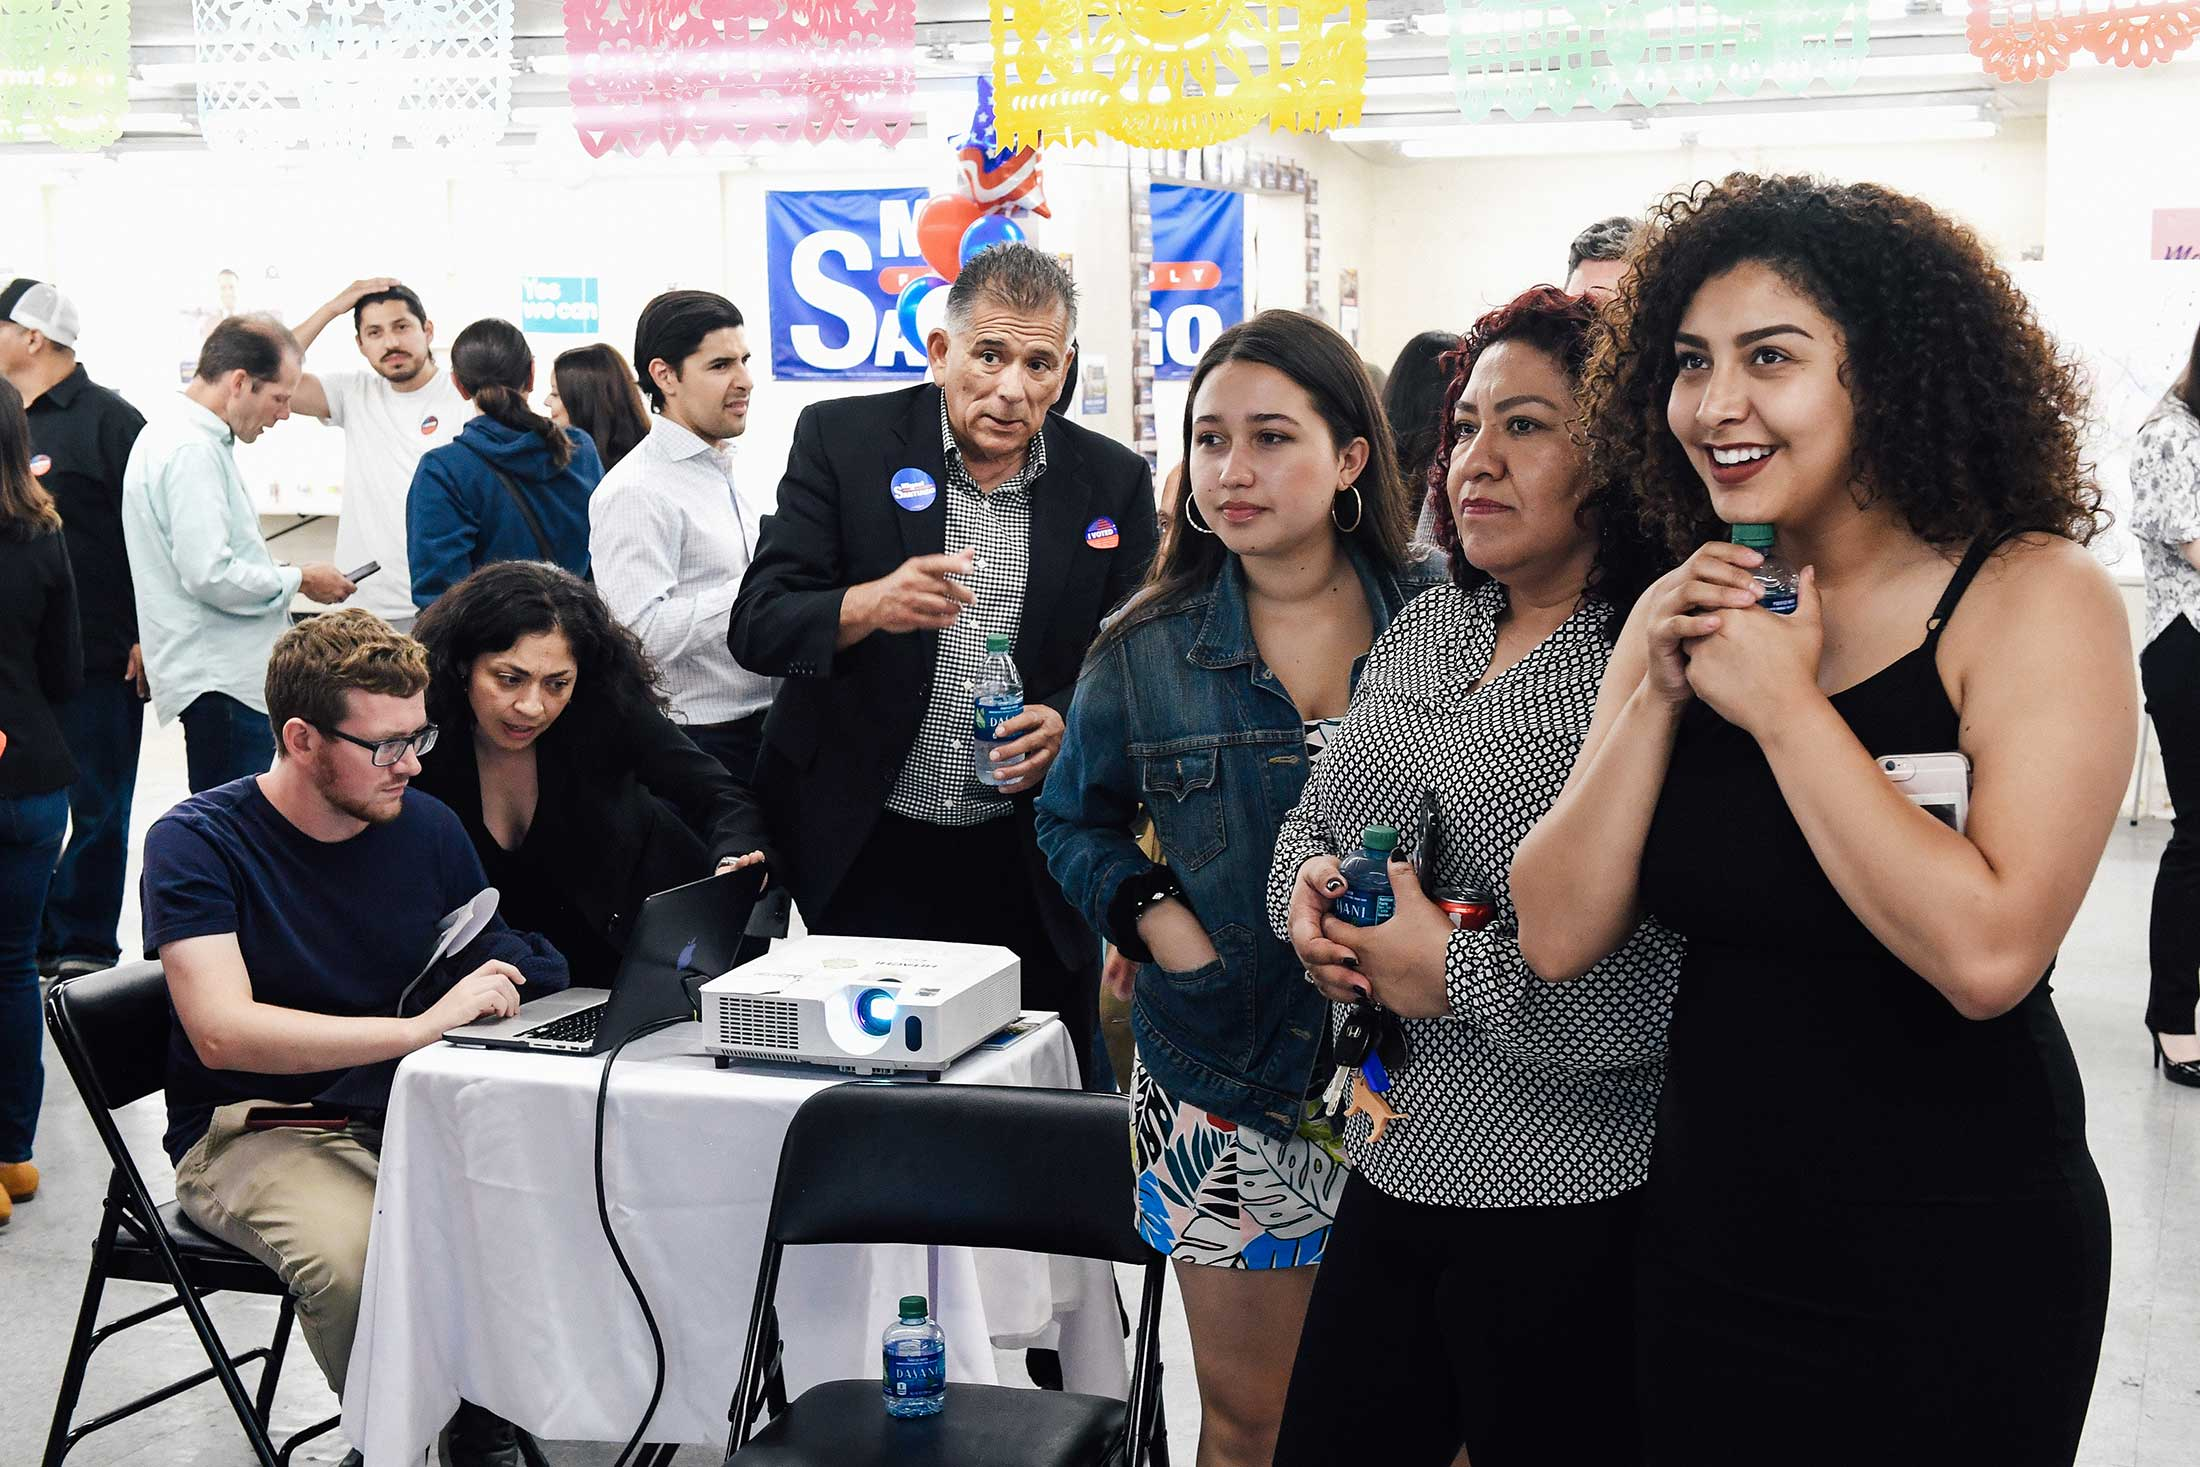 A crowd of excited young people smiling and look upward as if at a television screen